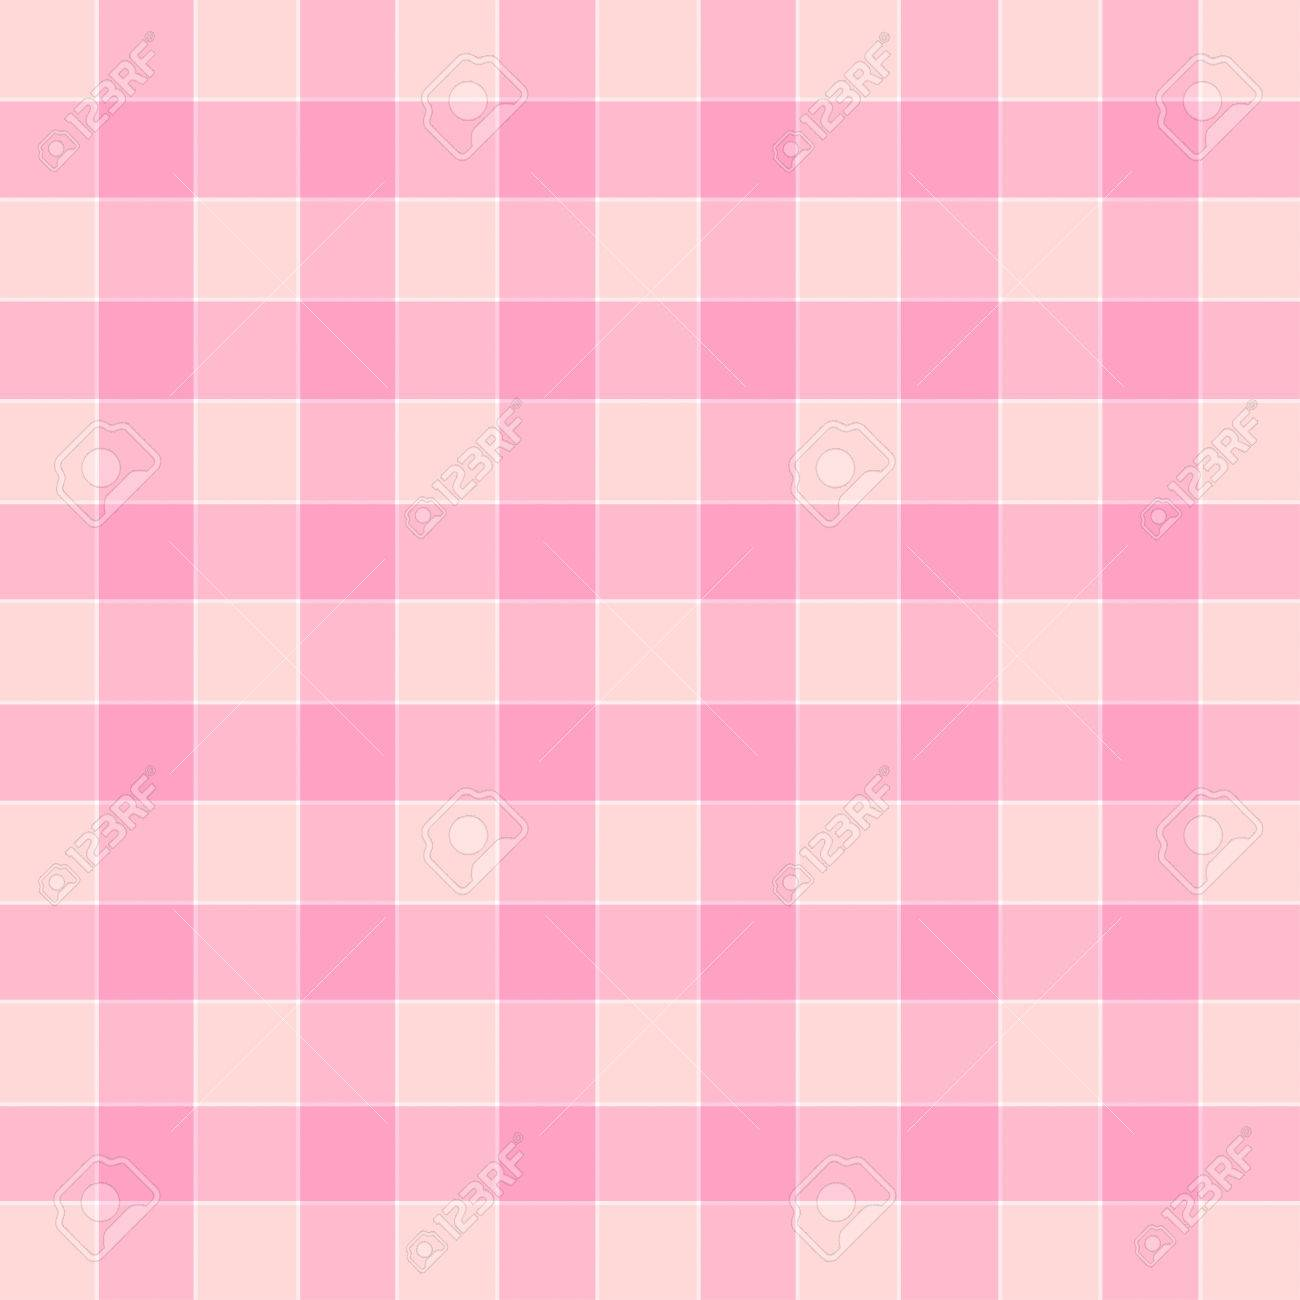 Plaid Color Match Pink Tone Vector Illustration Stock